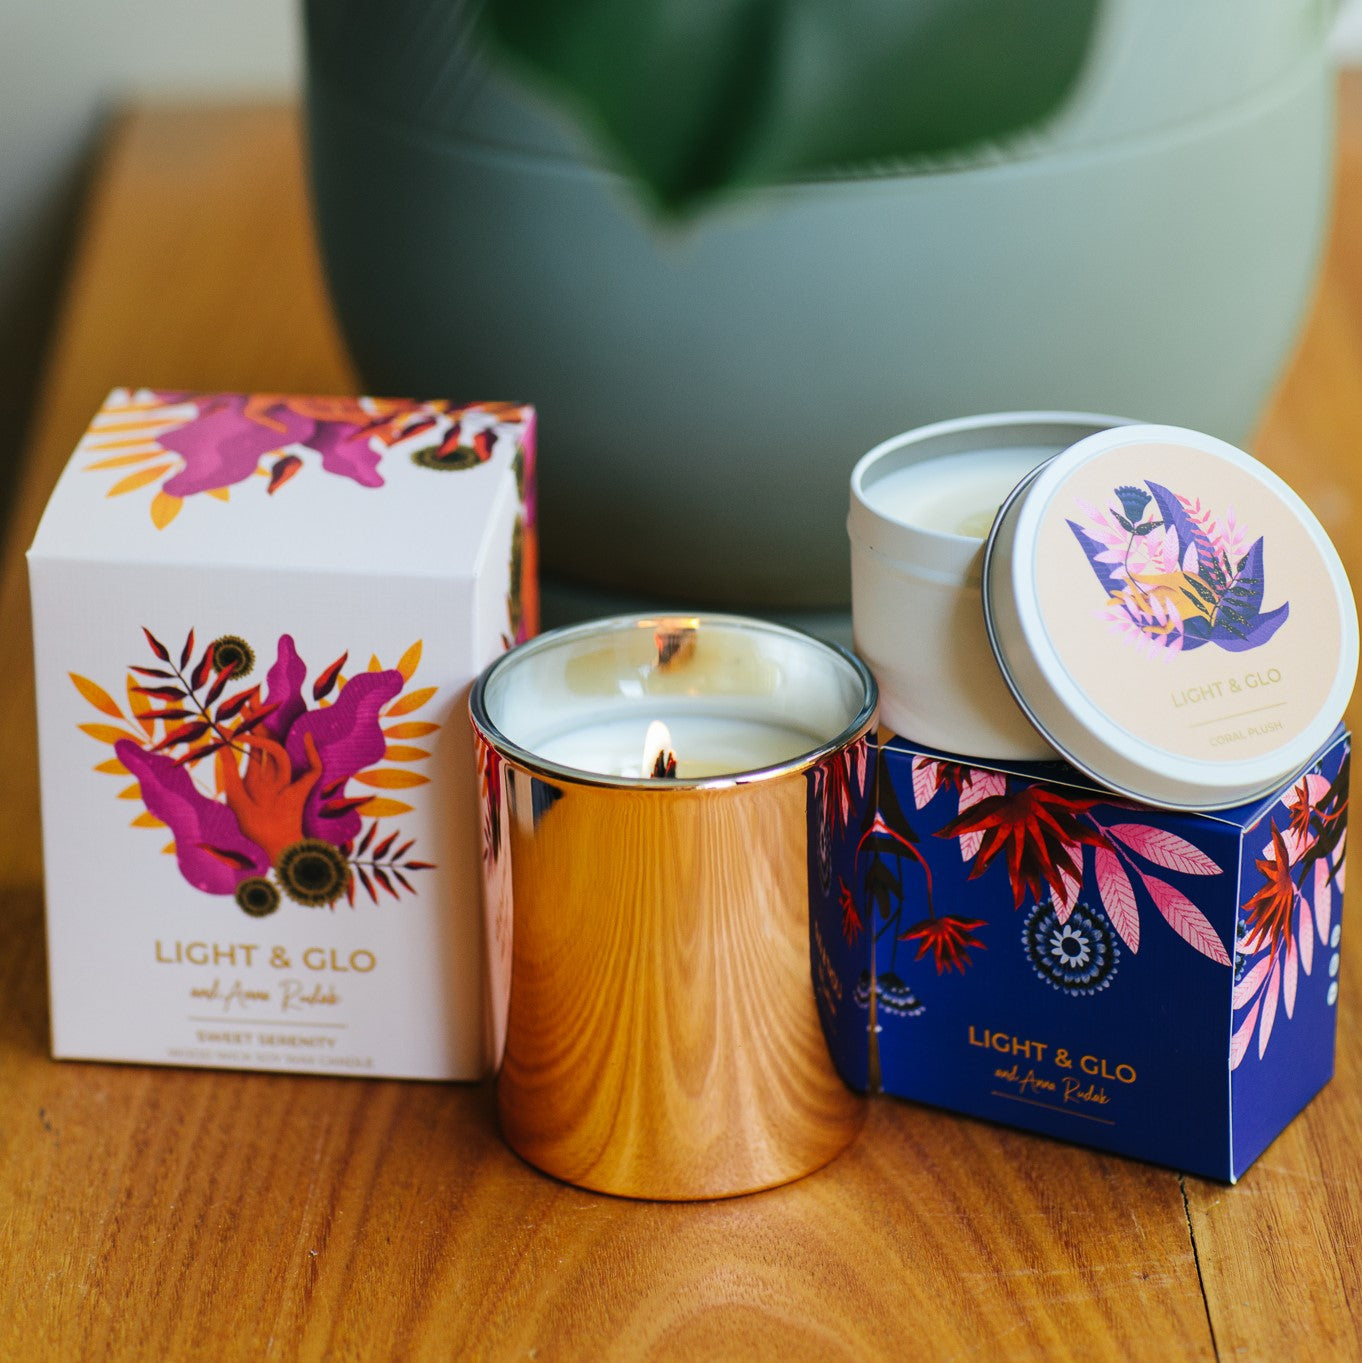 Send Your Love With a Candle this Valentine's